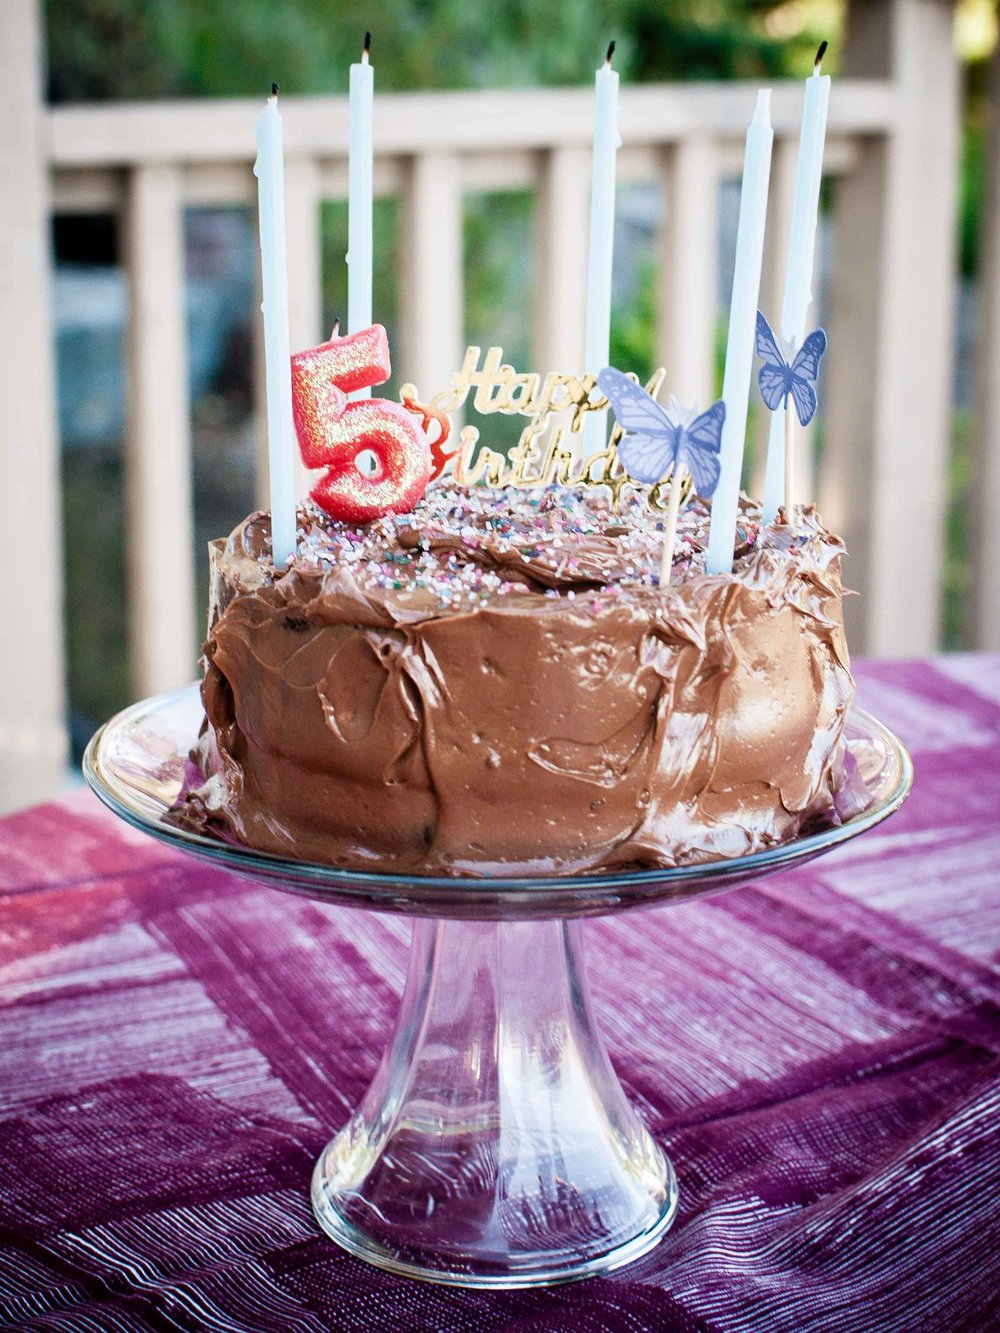 Chocolate Birthday Cake with Chocolate Buttercream Frosting